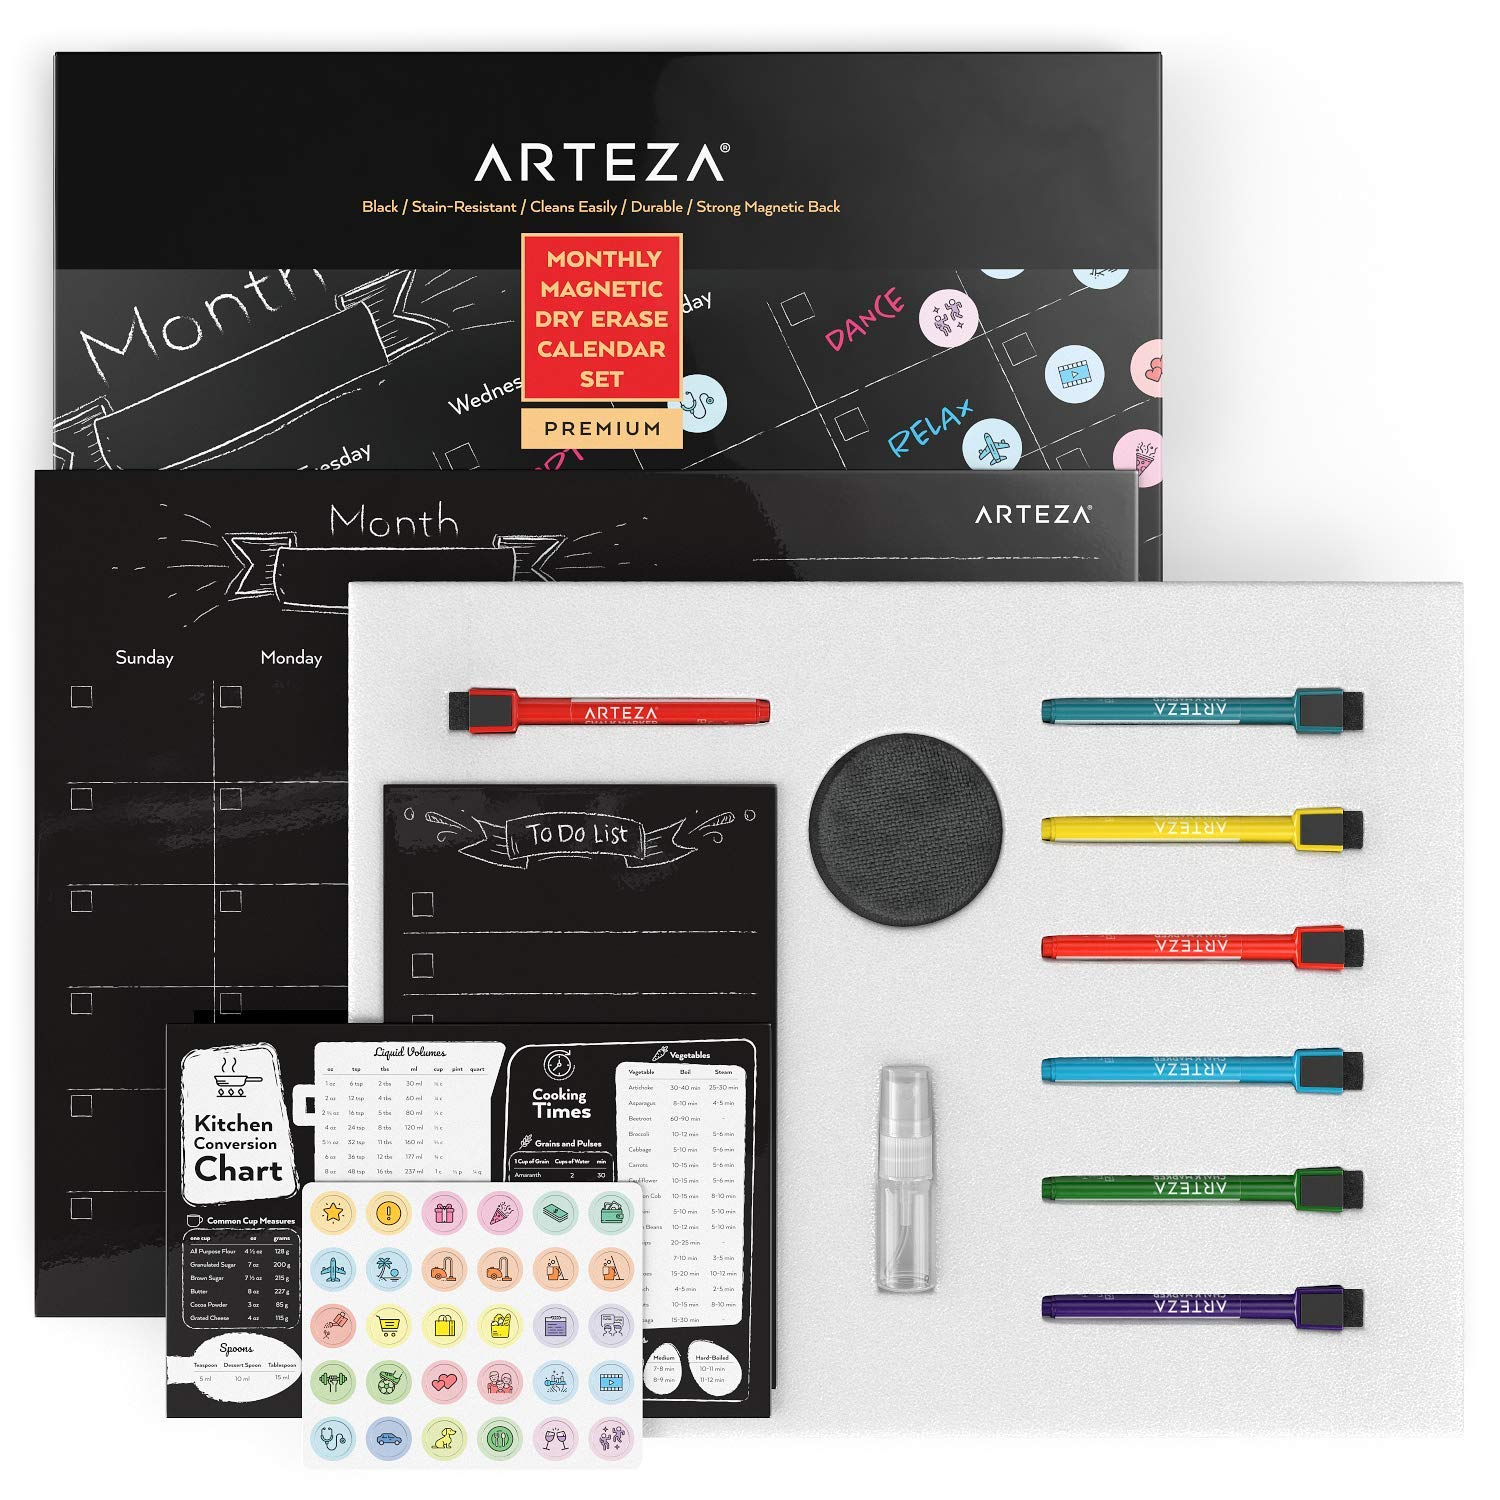 "ARTEZA Monthly Dry Erase Magnetic Calendar Set (17x13"" Black Calendar, 9x6"" to-Do List, 9x6"" Kitchen Conversion Chart, 12 Colorful fine tip Markers, 30 Mini Activity Magnets, Sponge, Spray Bottle)"